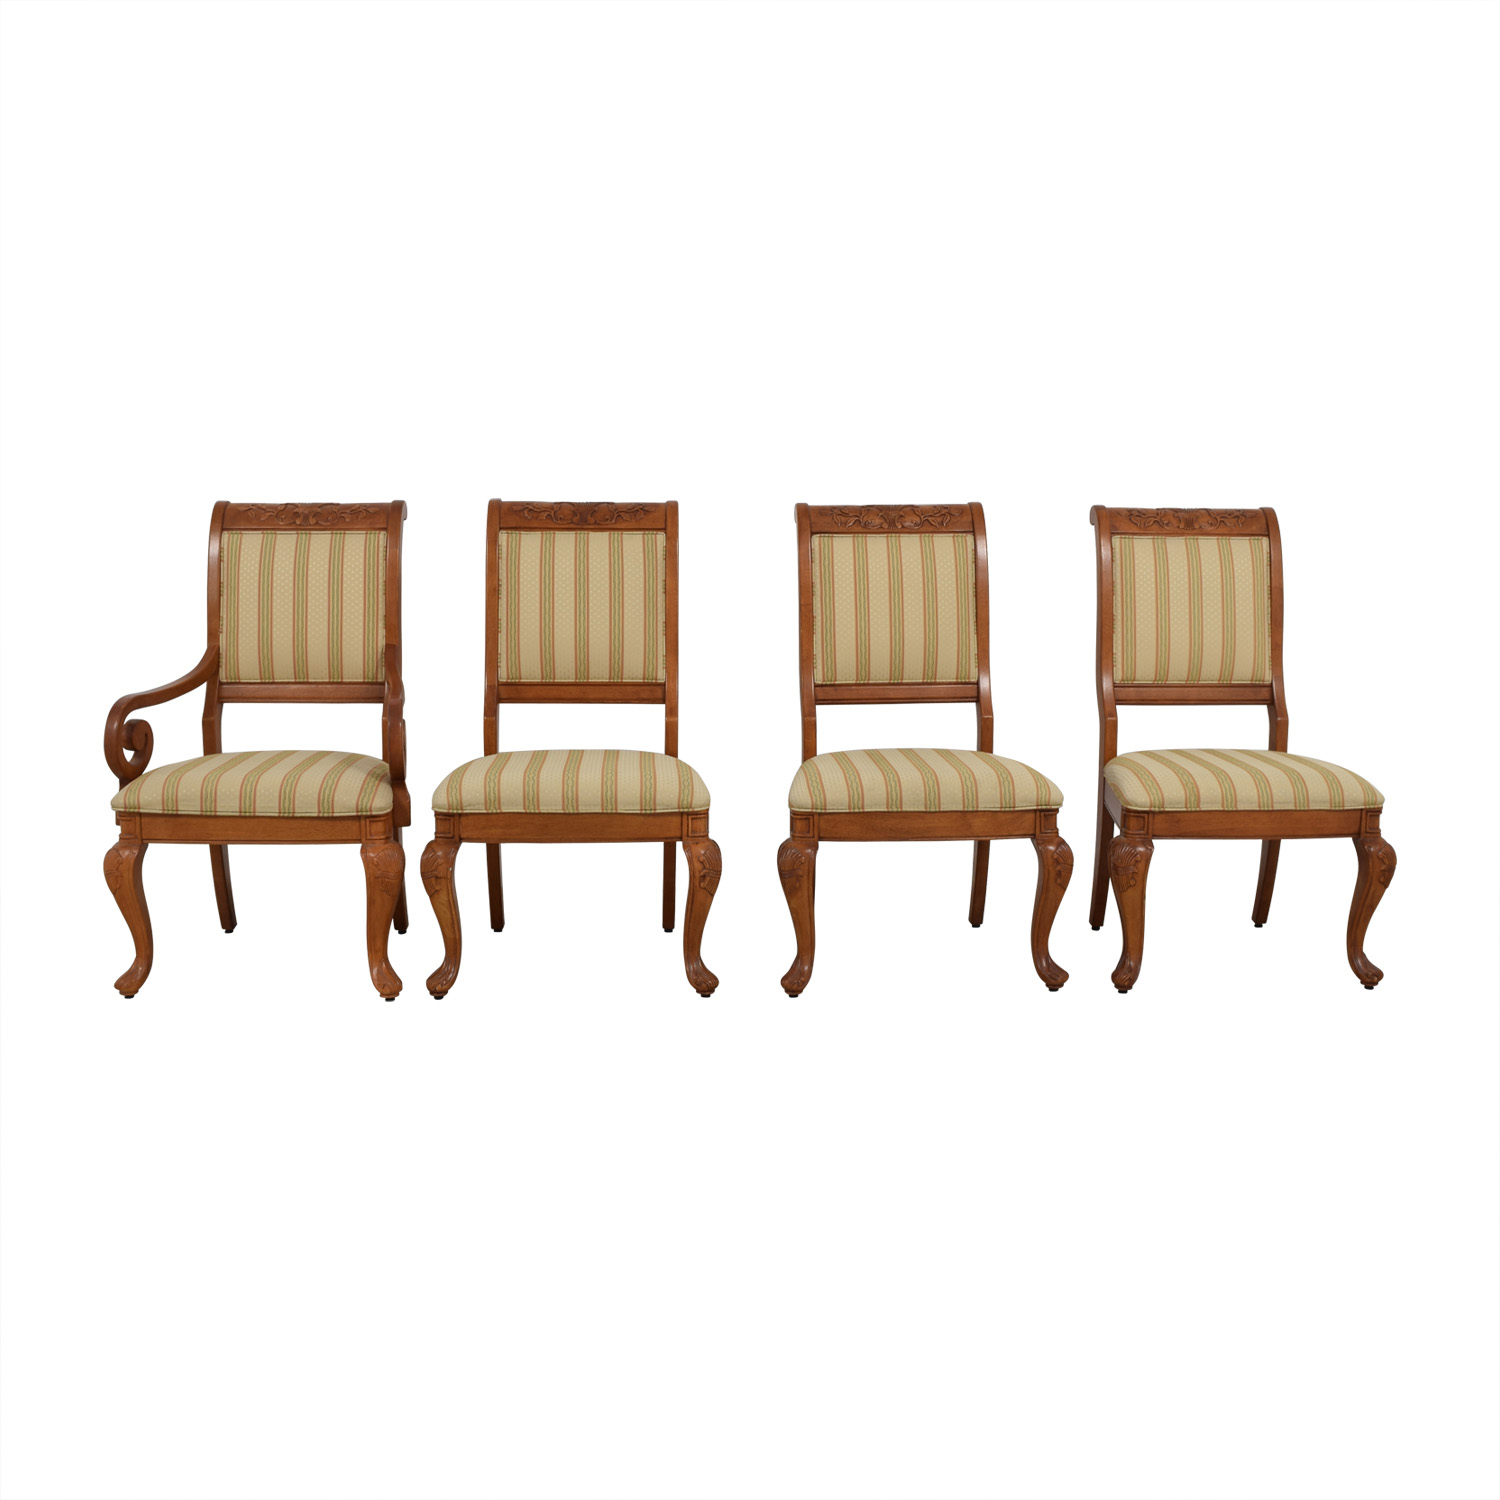 Furniture Masters Furniture Masters Striped Upholstered Carved Dining Chairs  Tan/Green/Pink/Pine ...